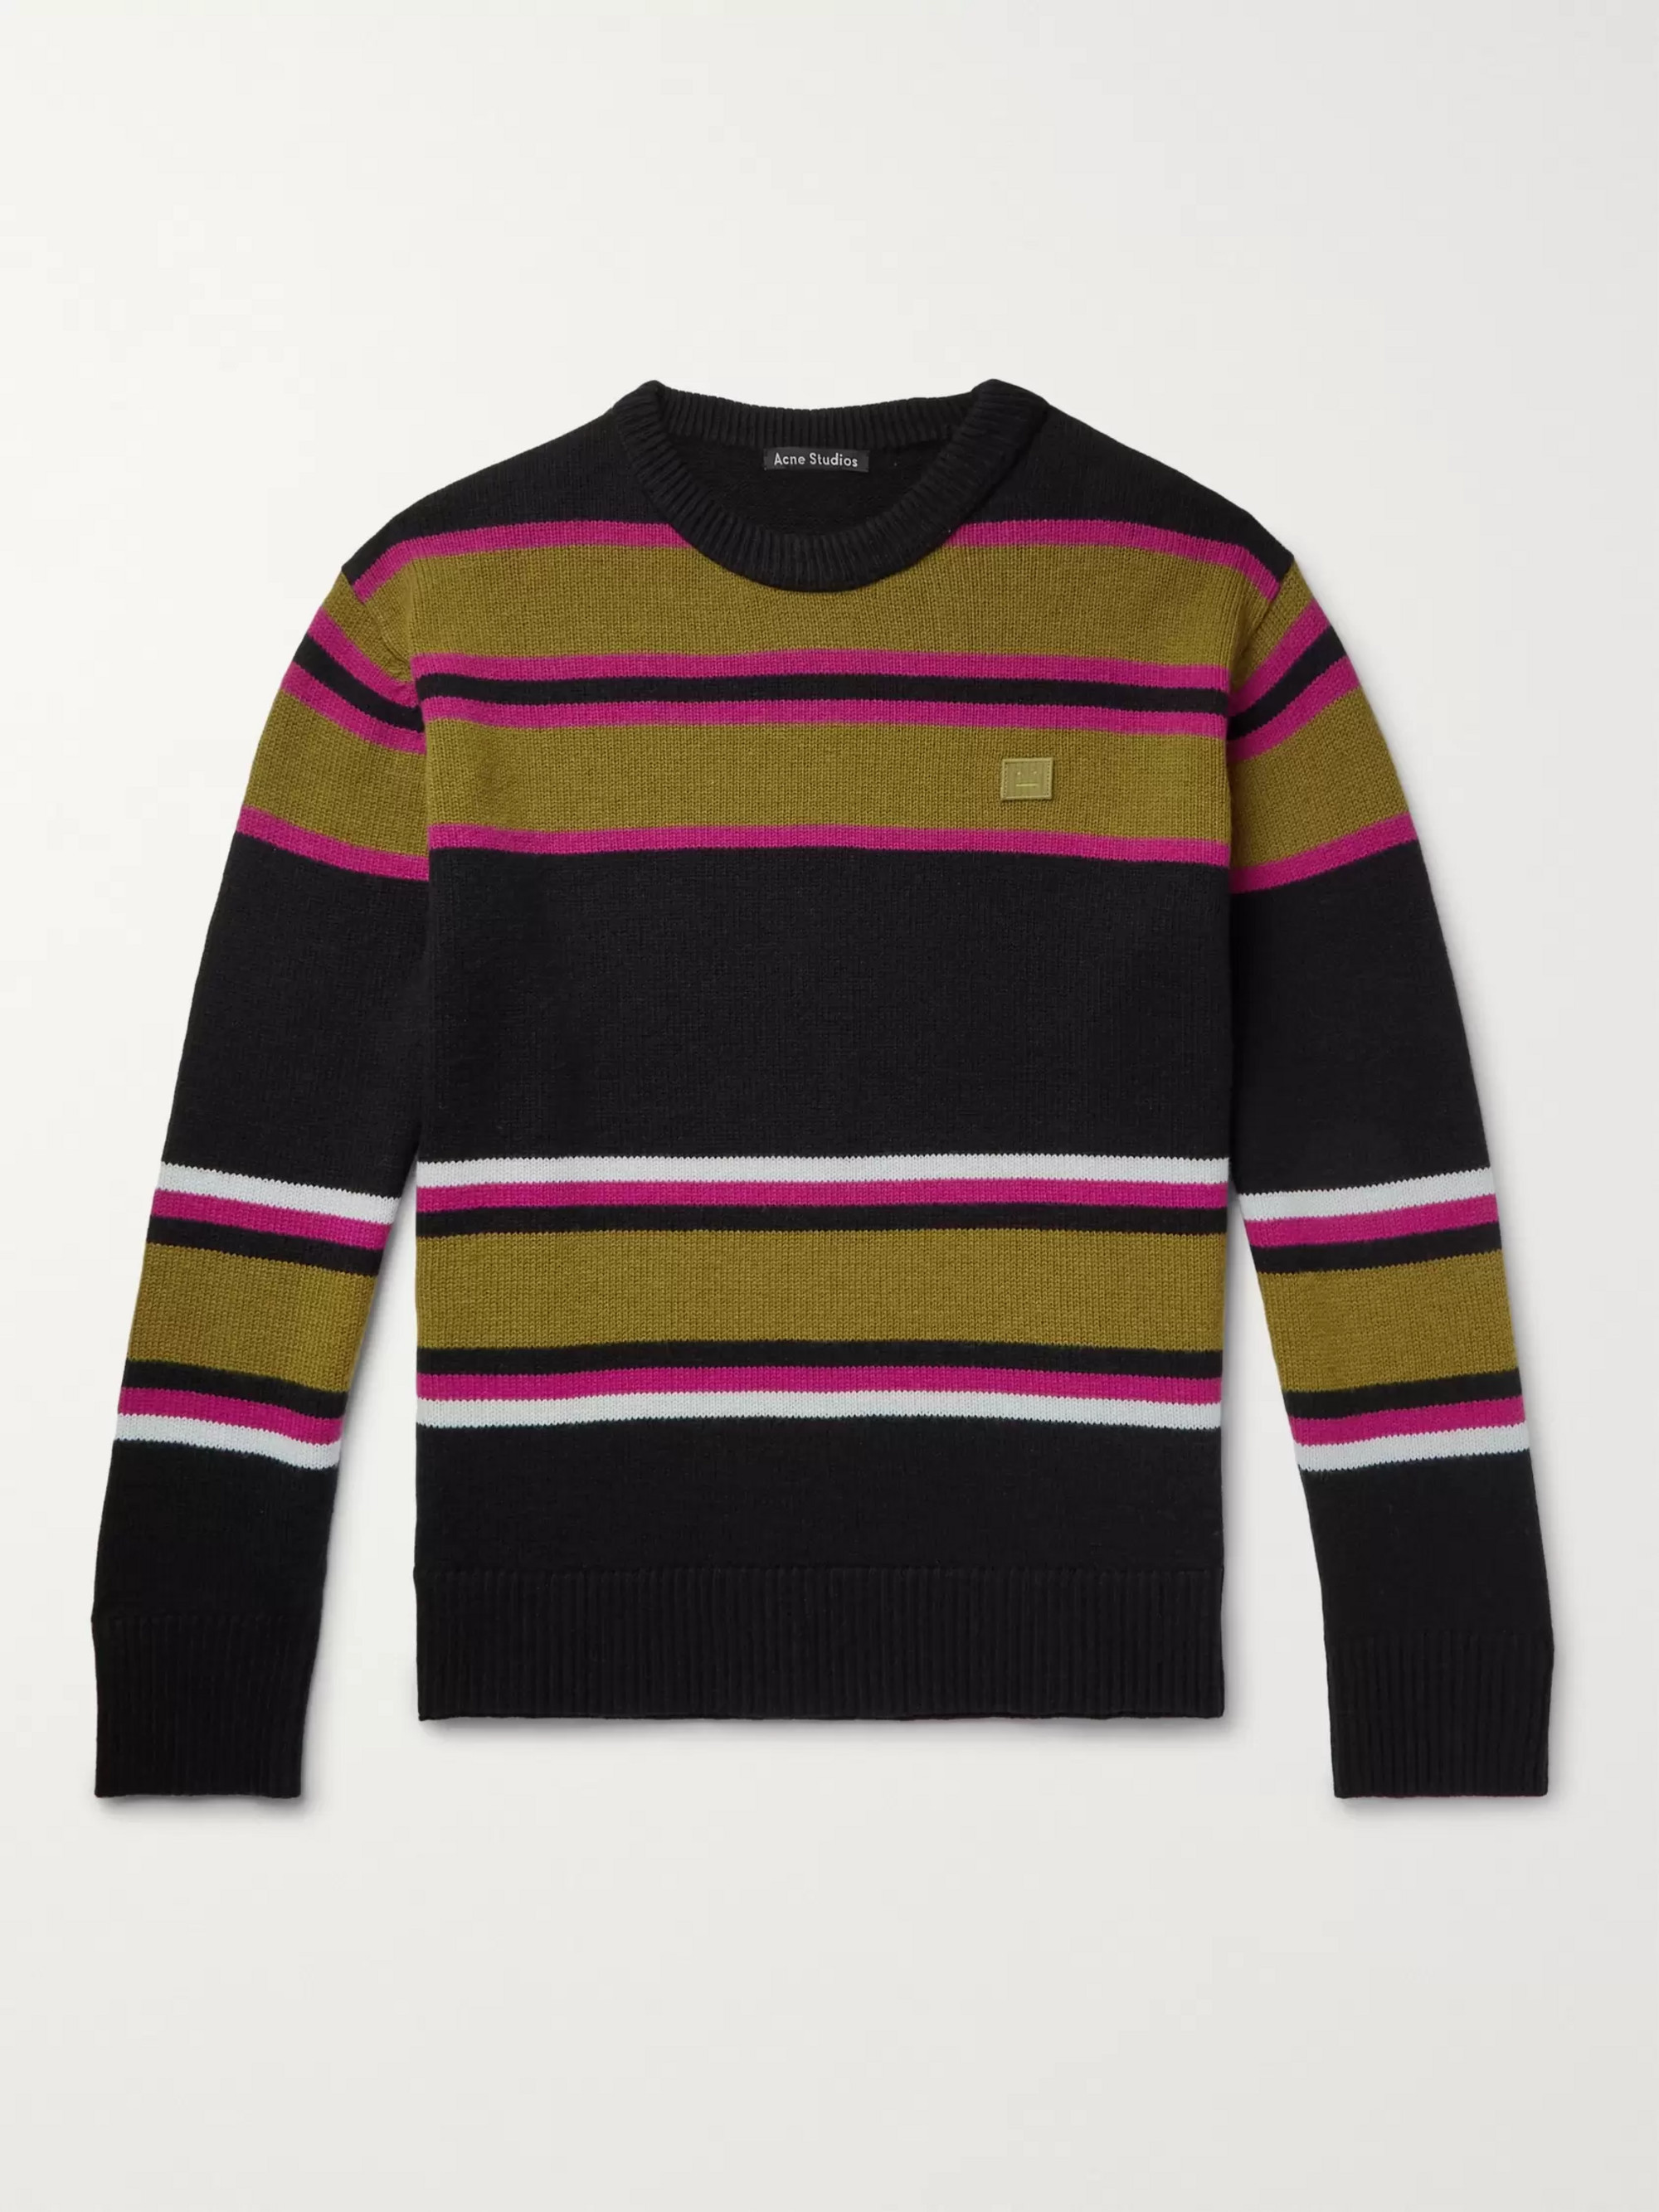 Acne Studios Nema Striped Wool Sweater